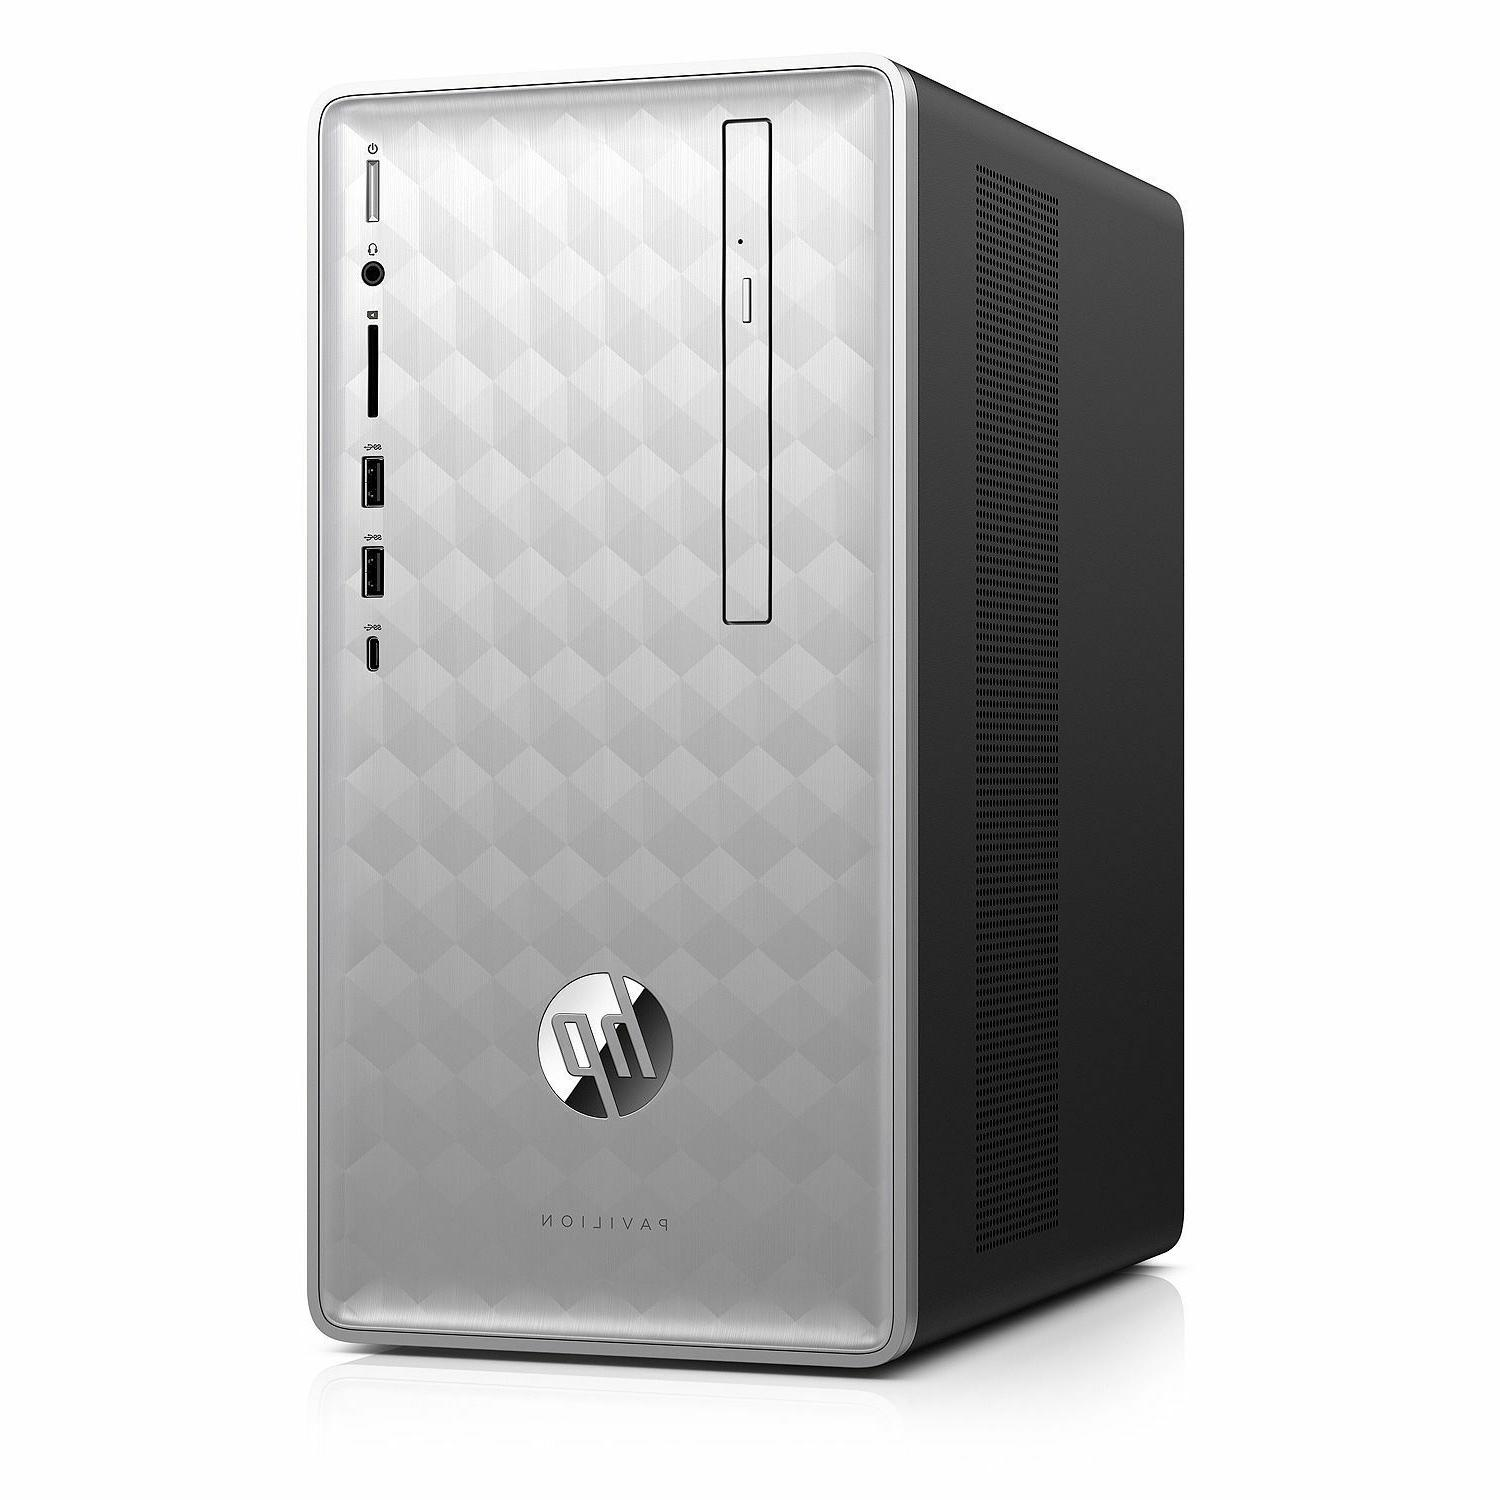 HP Pavilion i7-8700 AMD RX 2GB Premium Business Tower